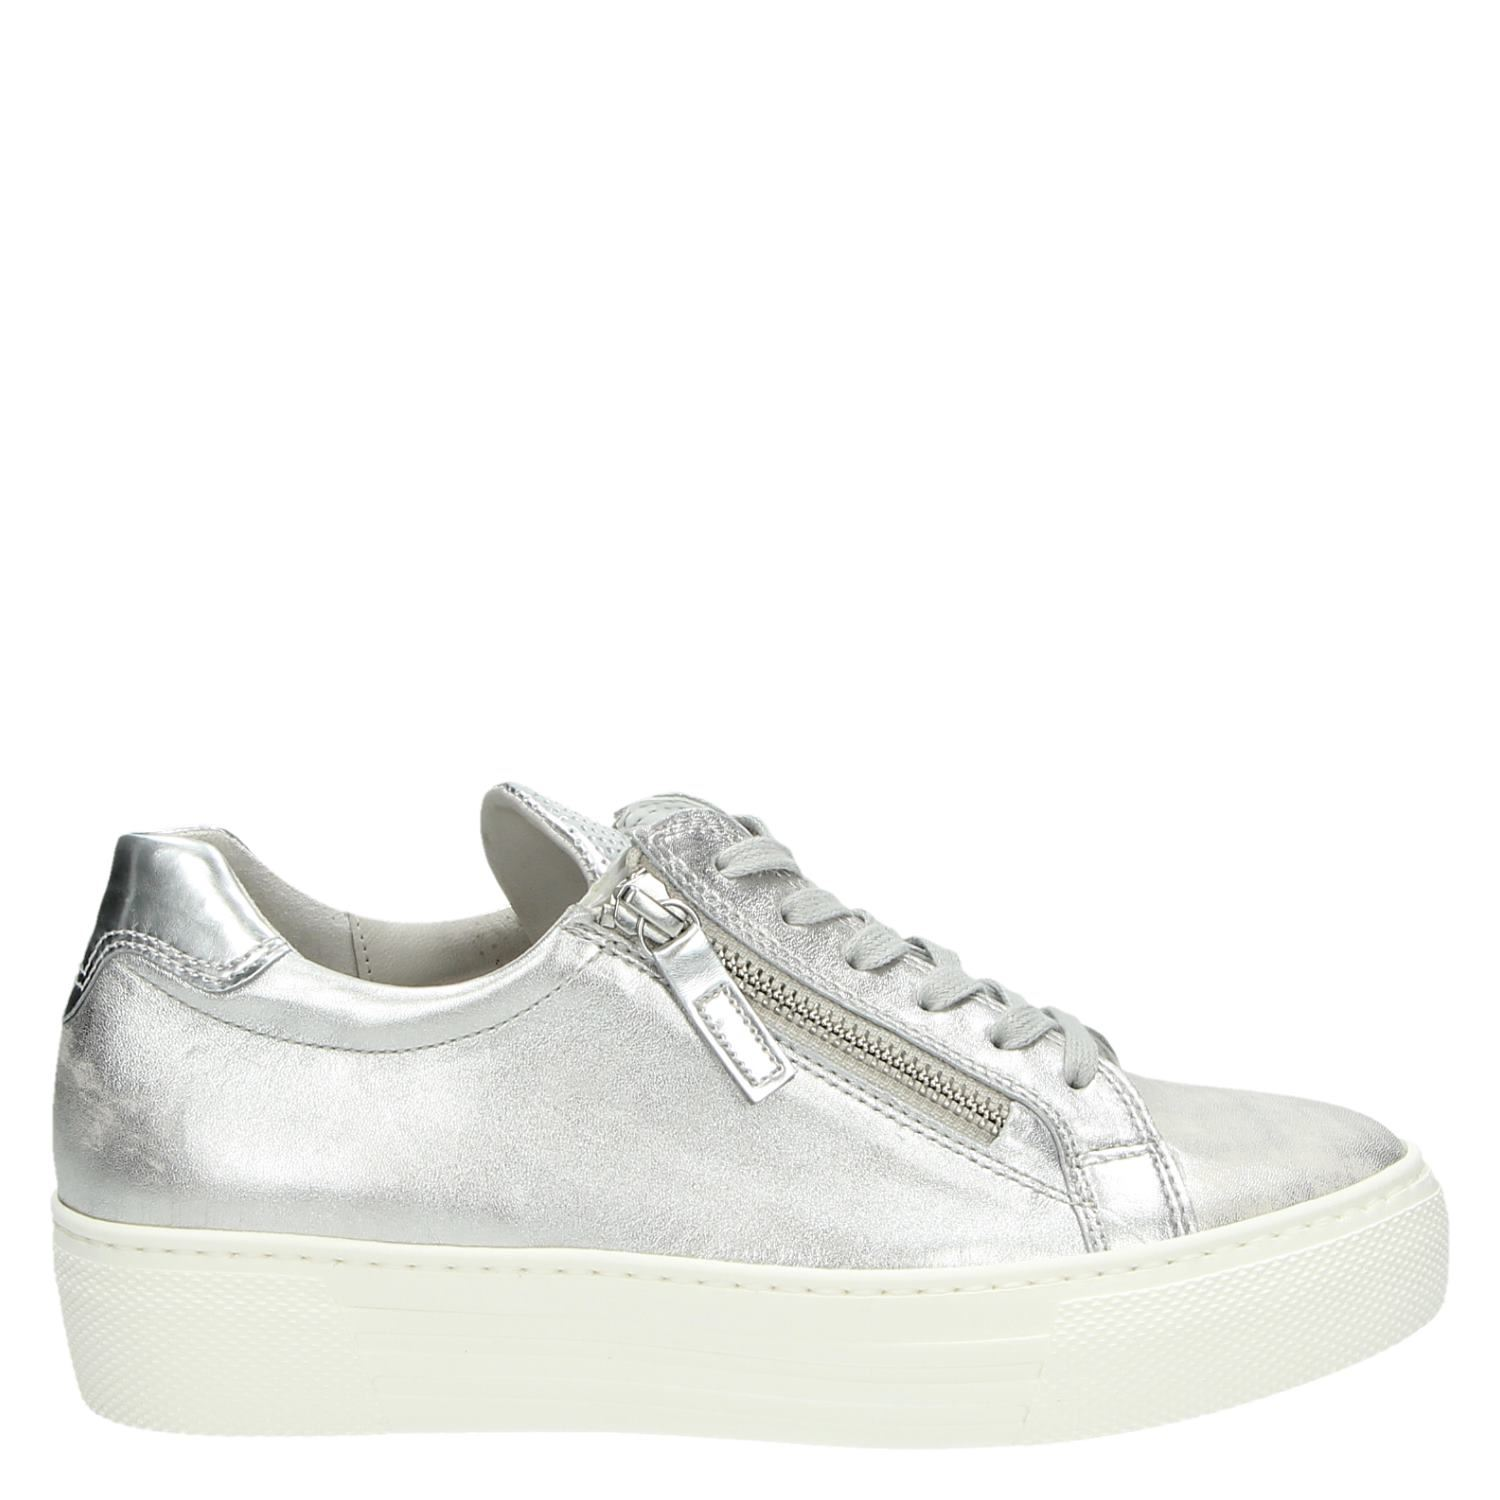 Gabor Sneaker Blanc - Femmes - Taille 39 AQJBY